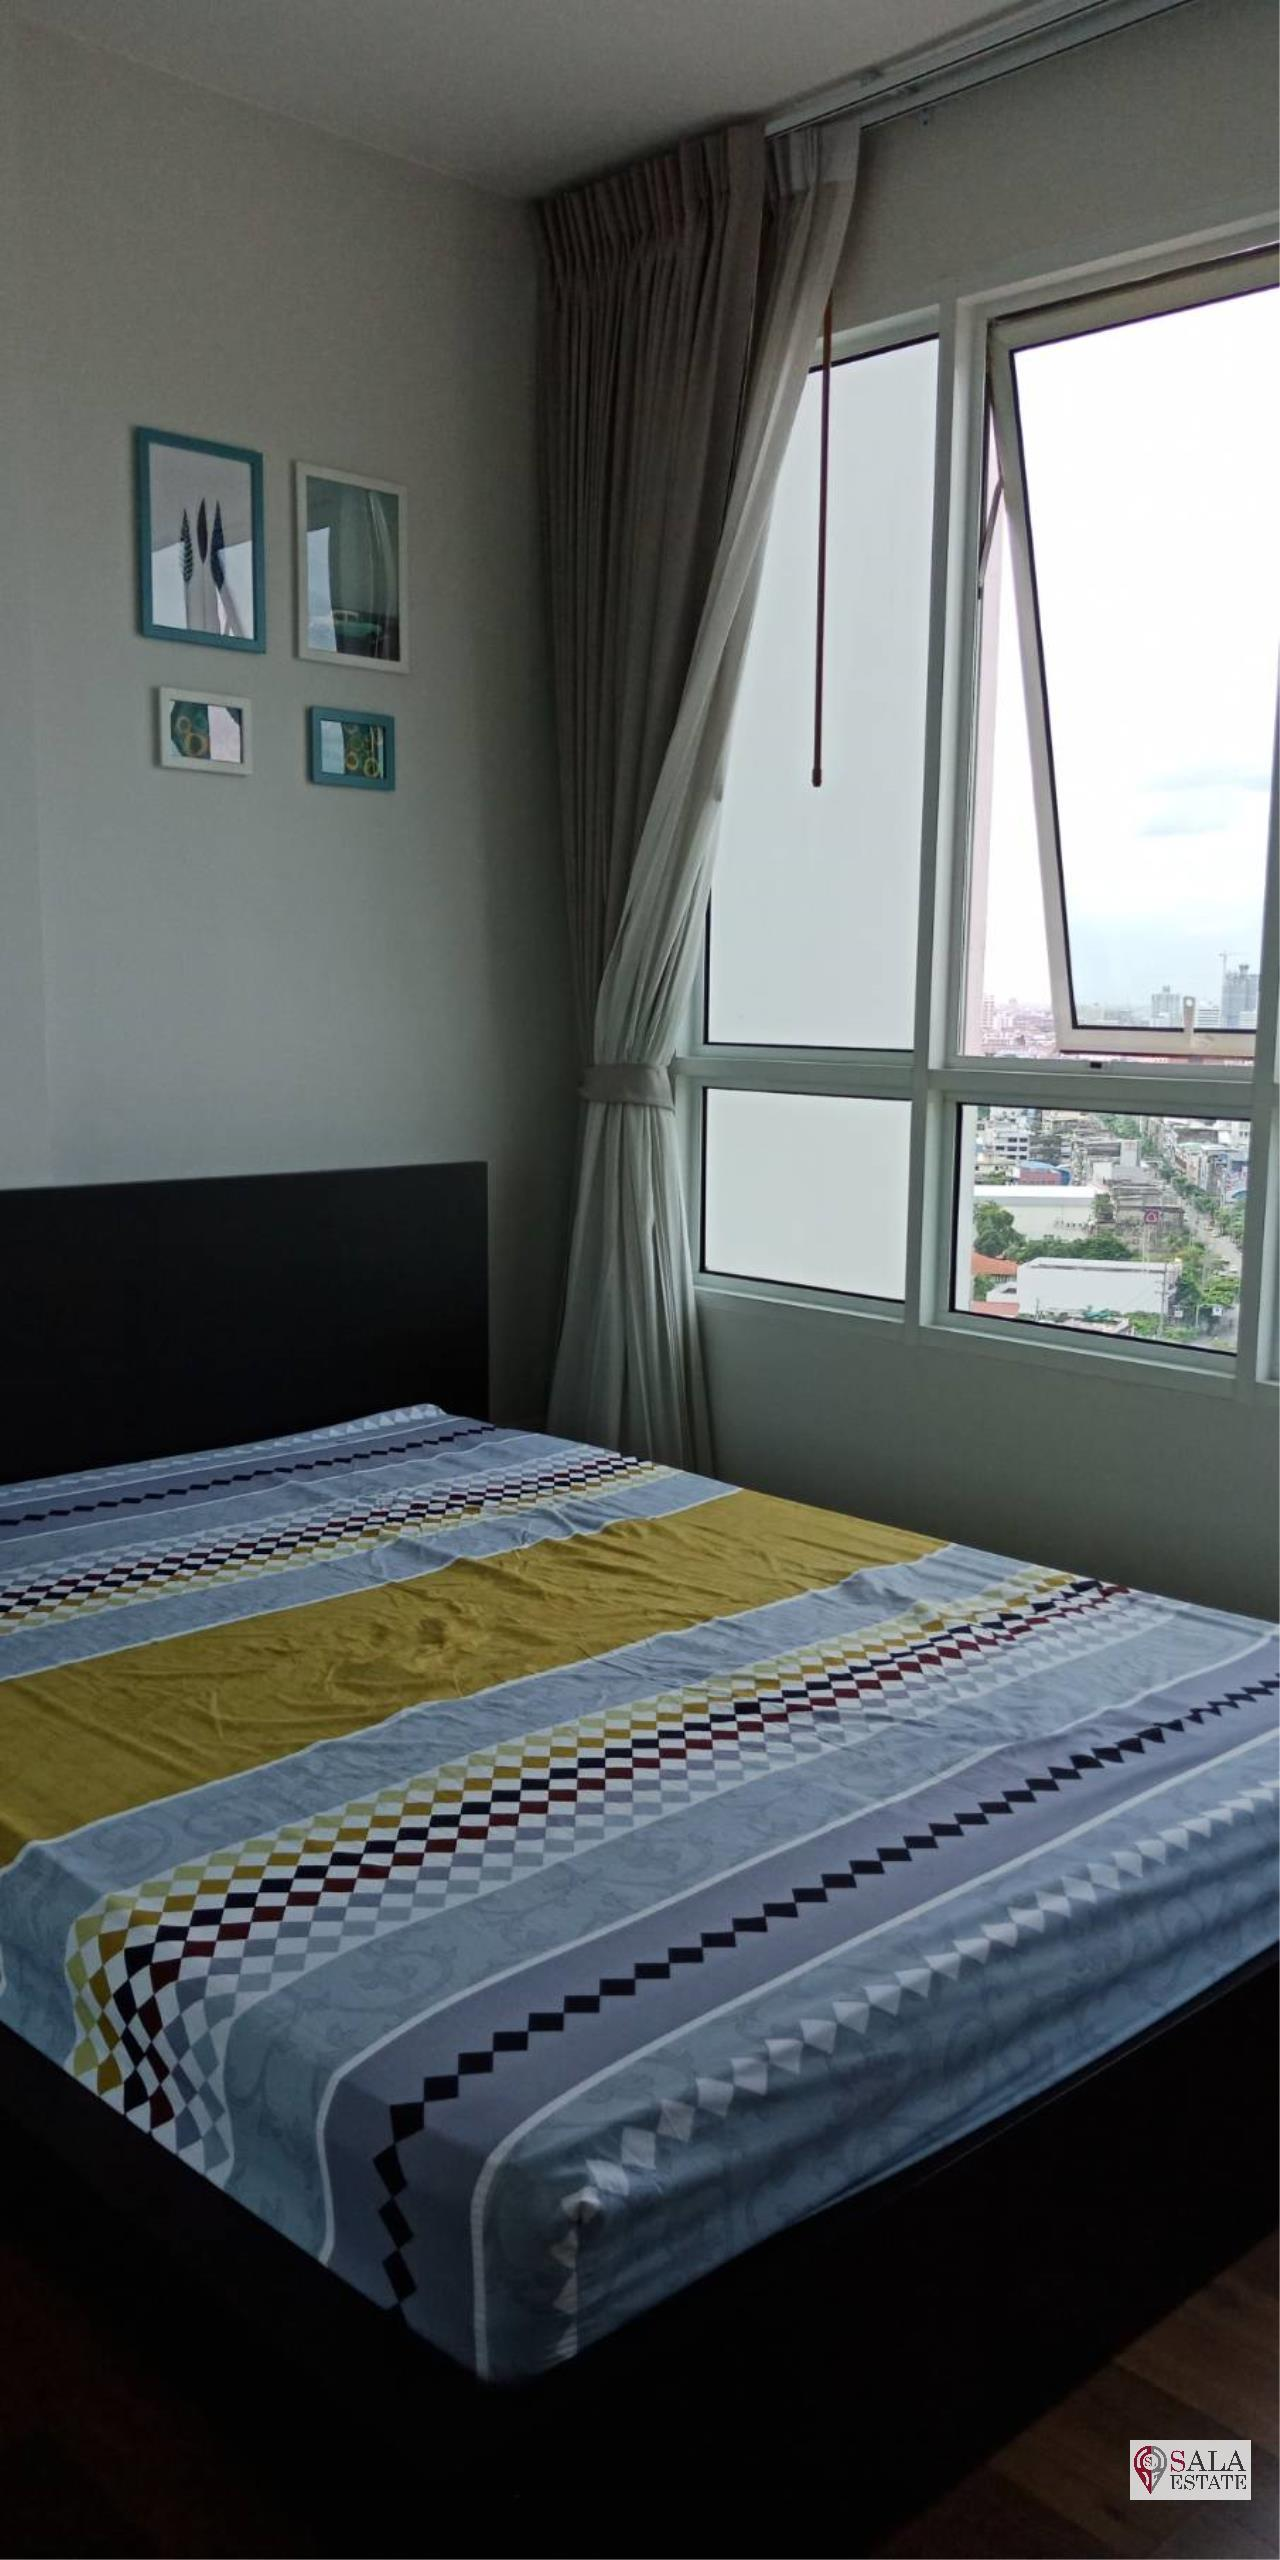 SALA ESTATE Agency's THE BLOOM SUKHUMVIT 71 – BTS PHRA KHANONG, 2 BEDROOM 1 BATHROOM, FULLY FURNISHED, CITY VIEW 1